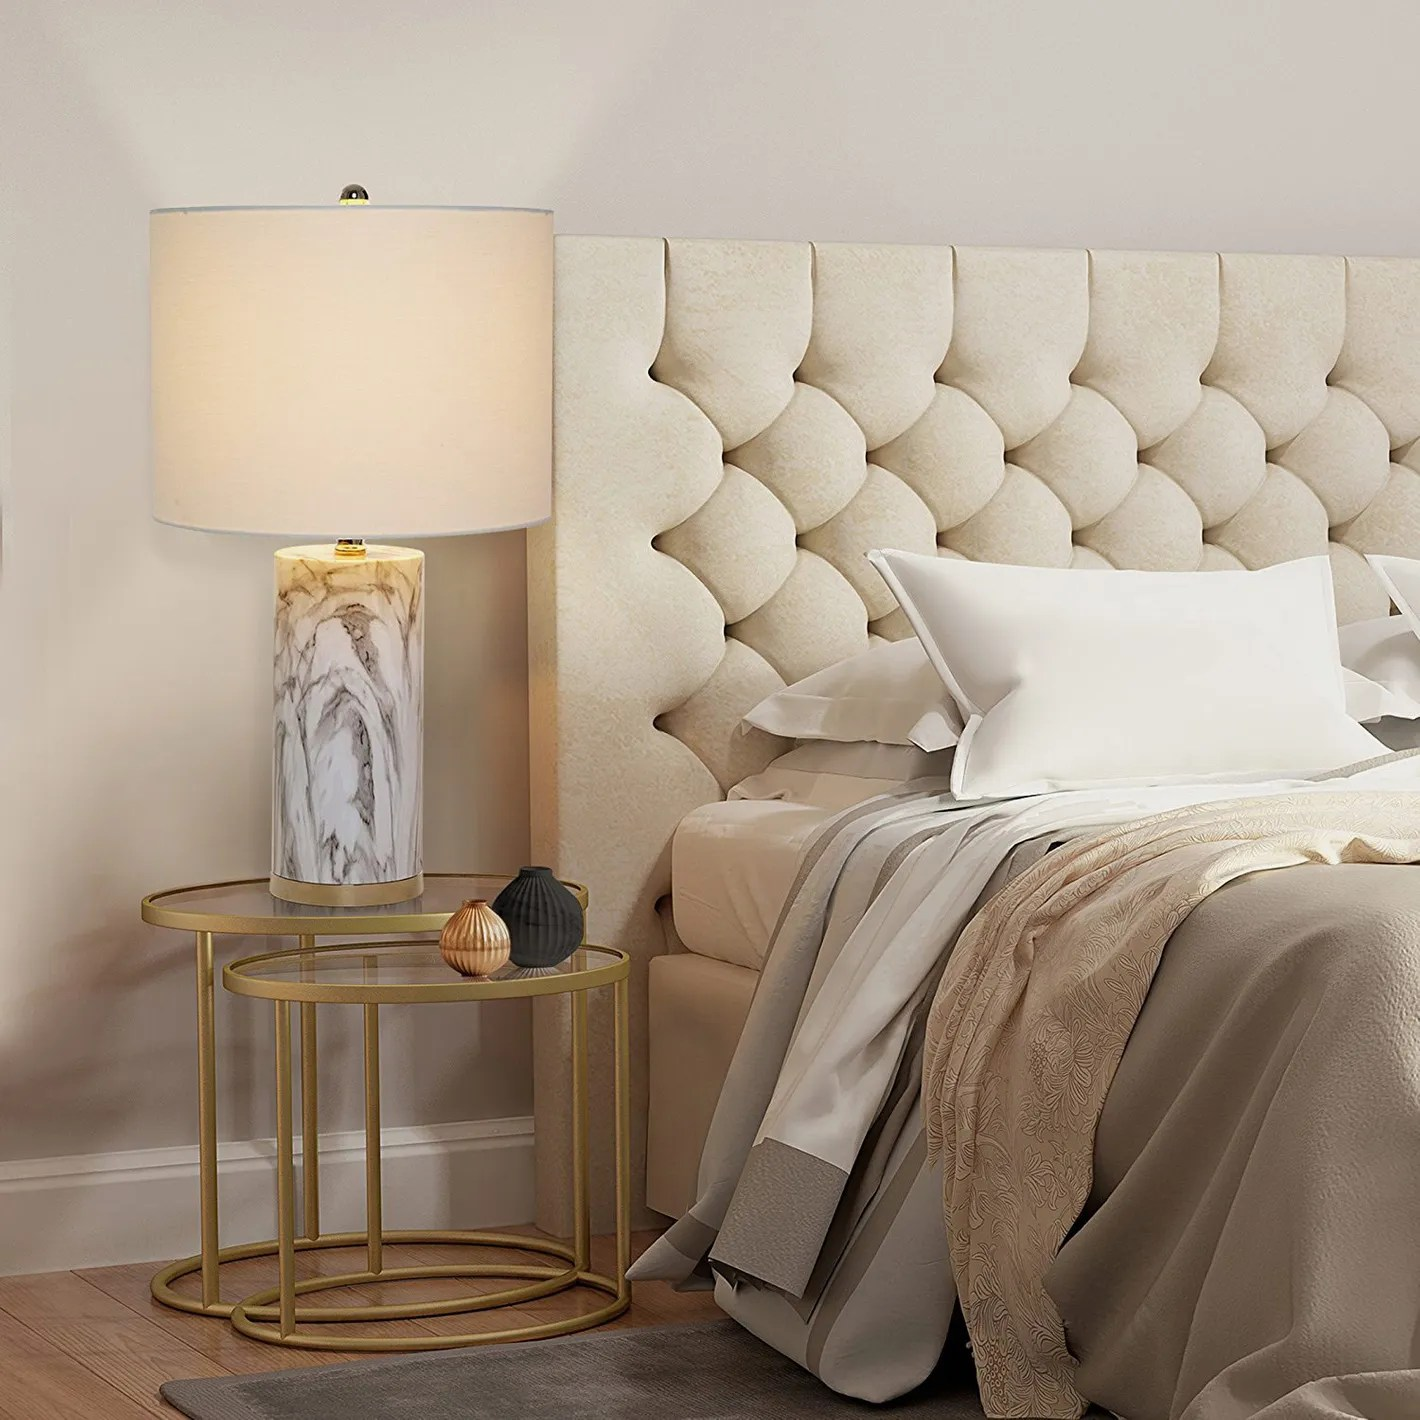 Bed Table Lamps The 27 Best Floor Lamps Reviewed By Designers 2018